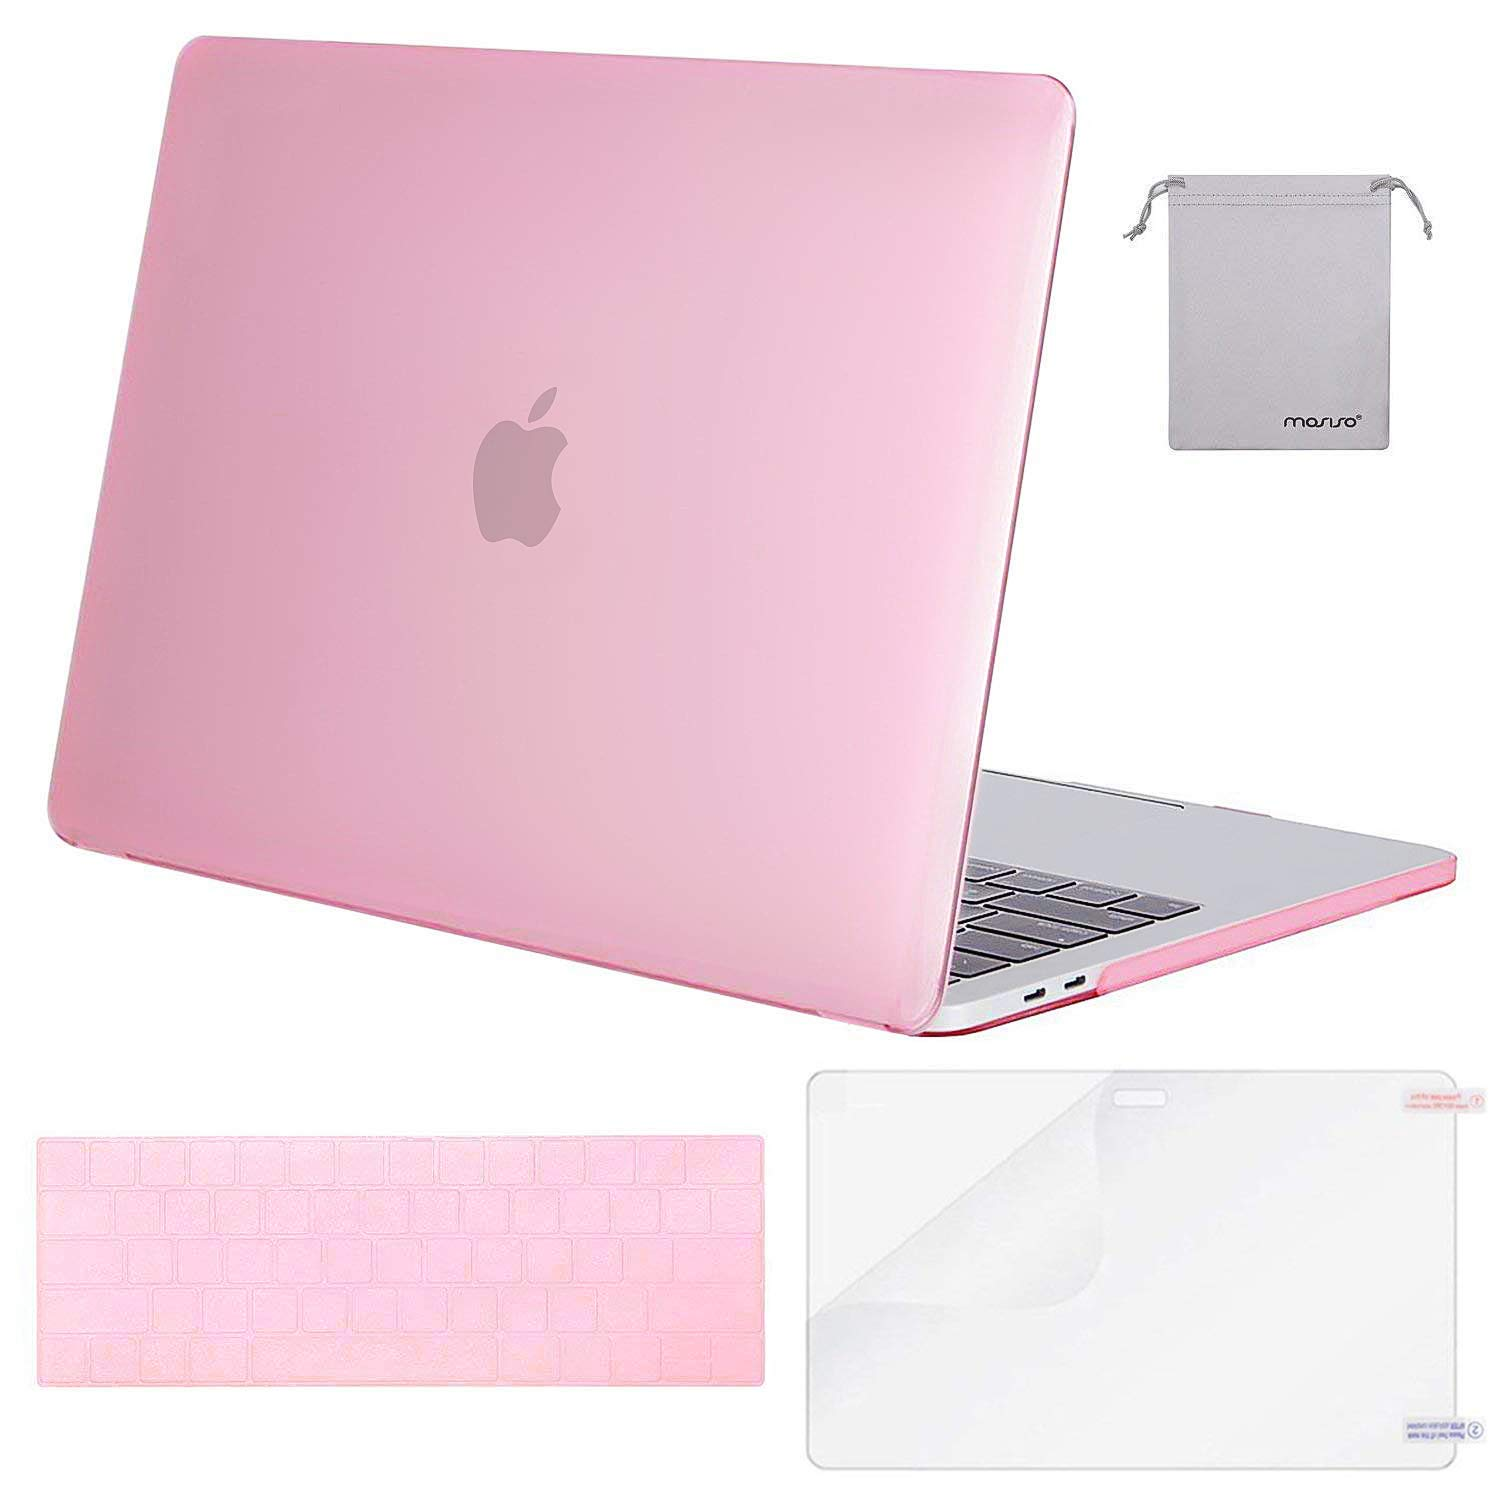 MOSISO MacBook Pro 13 Case 2019 2018 2017 2016 Release A1989 A1706 A1708, Plastic Hard Shell & Keyboard Cover & Screen Protector & Storage Bag Compatible Newest MacBook Pro 13 Inch, Pink